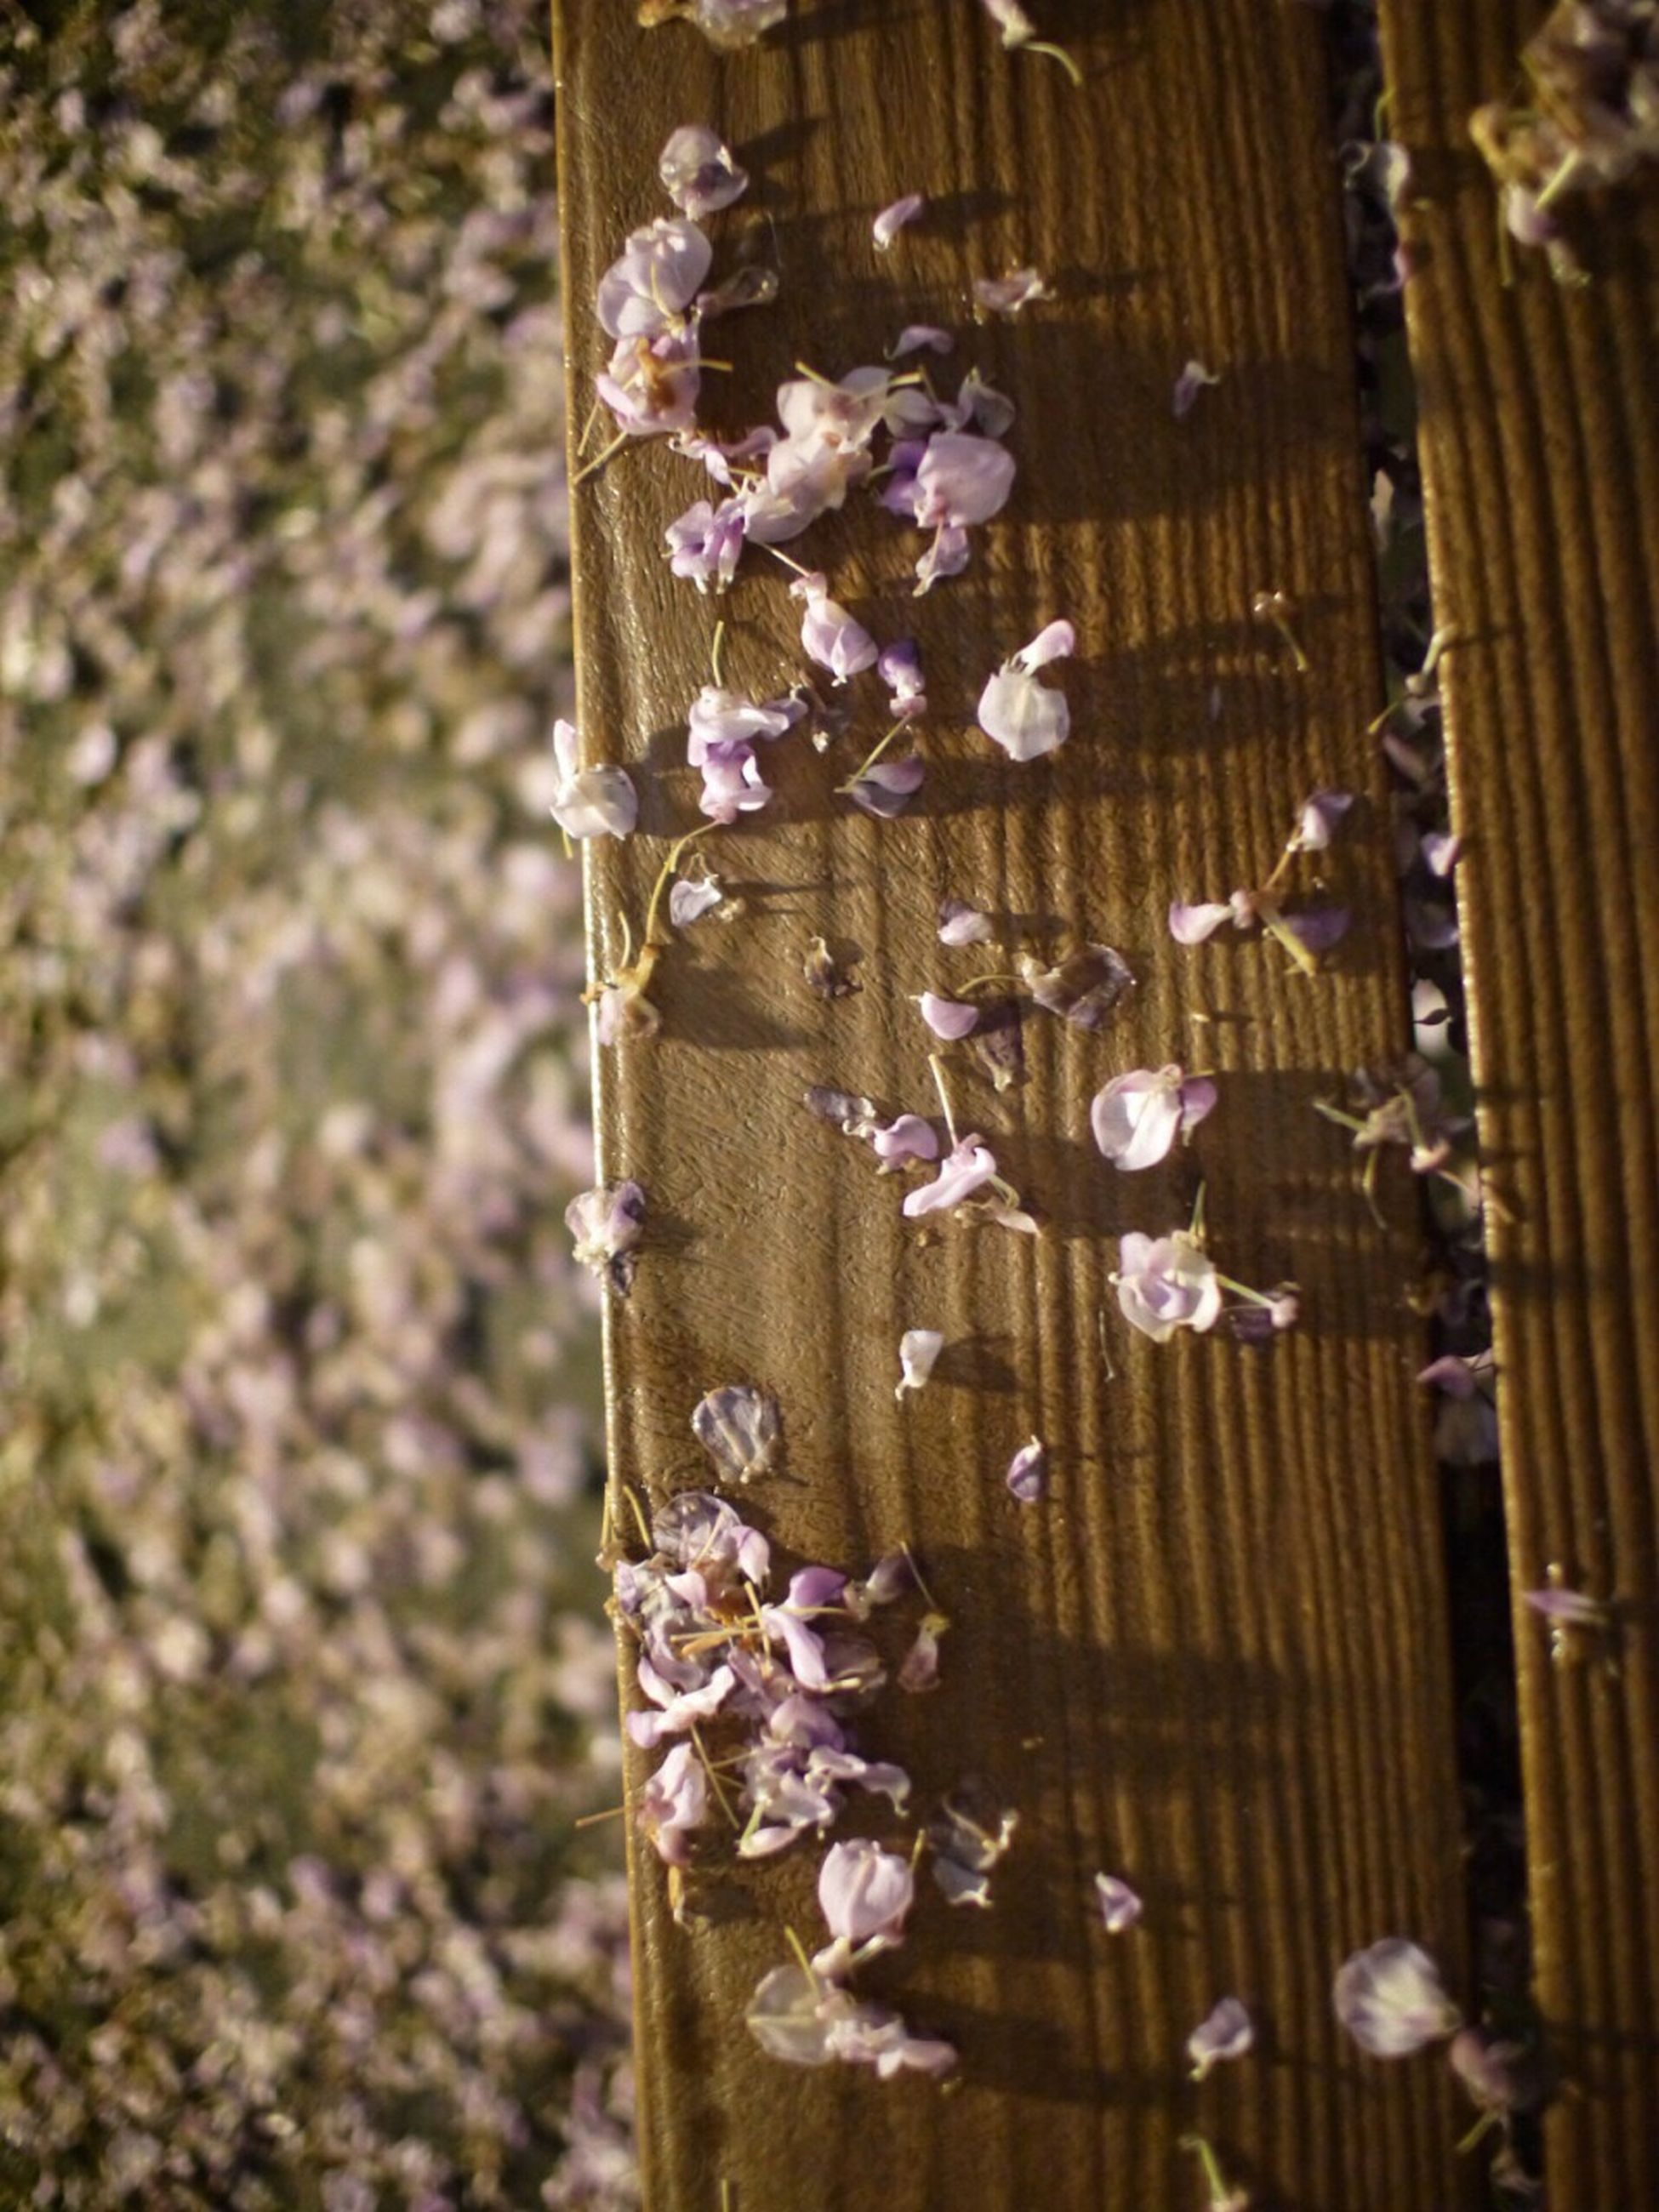 close-up, focus on foreground, wood - material, flower, freshness, day, fragility, wooden, outdoors, decoration, selective focus, pattern, hanging, no people, metal, nature, part of, growth, still life